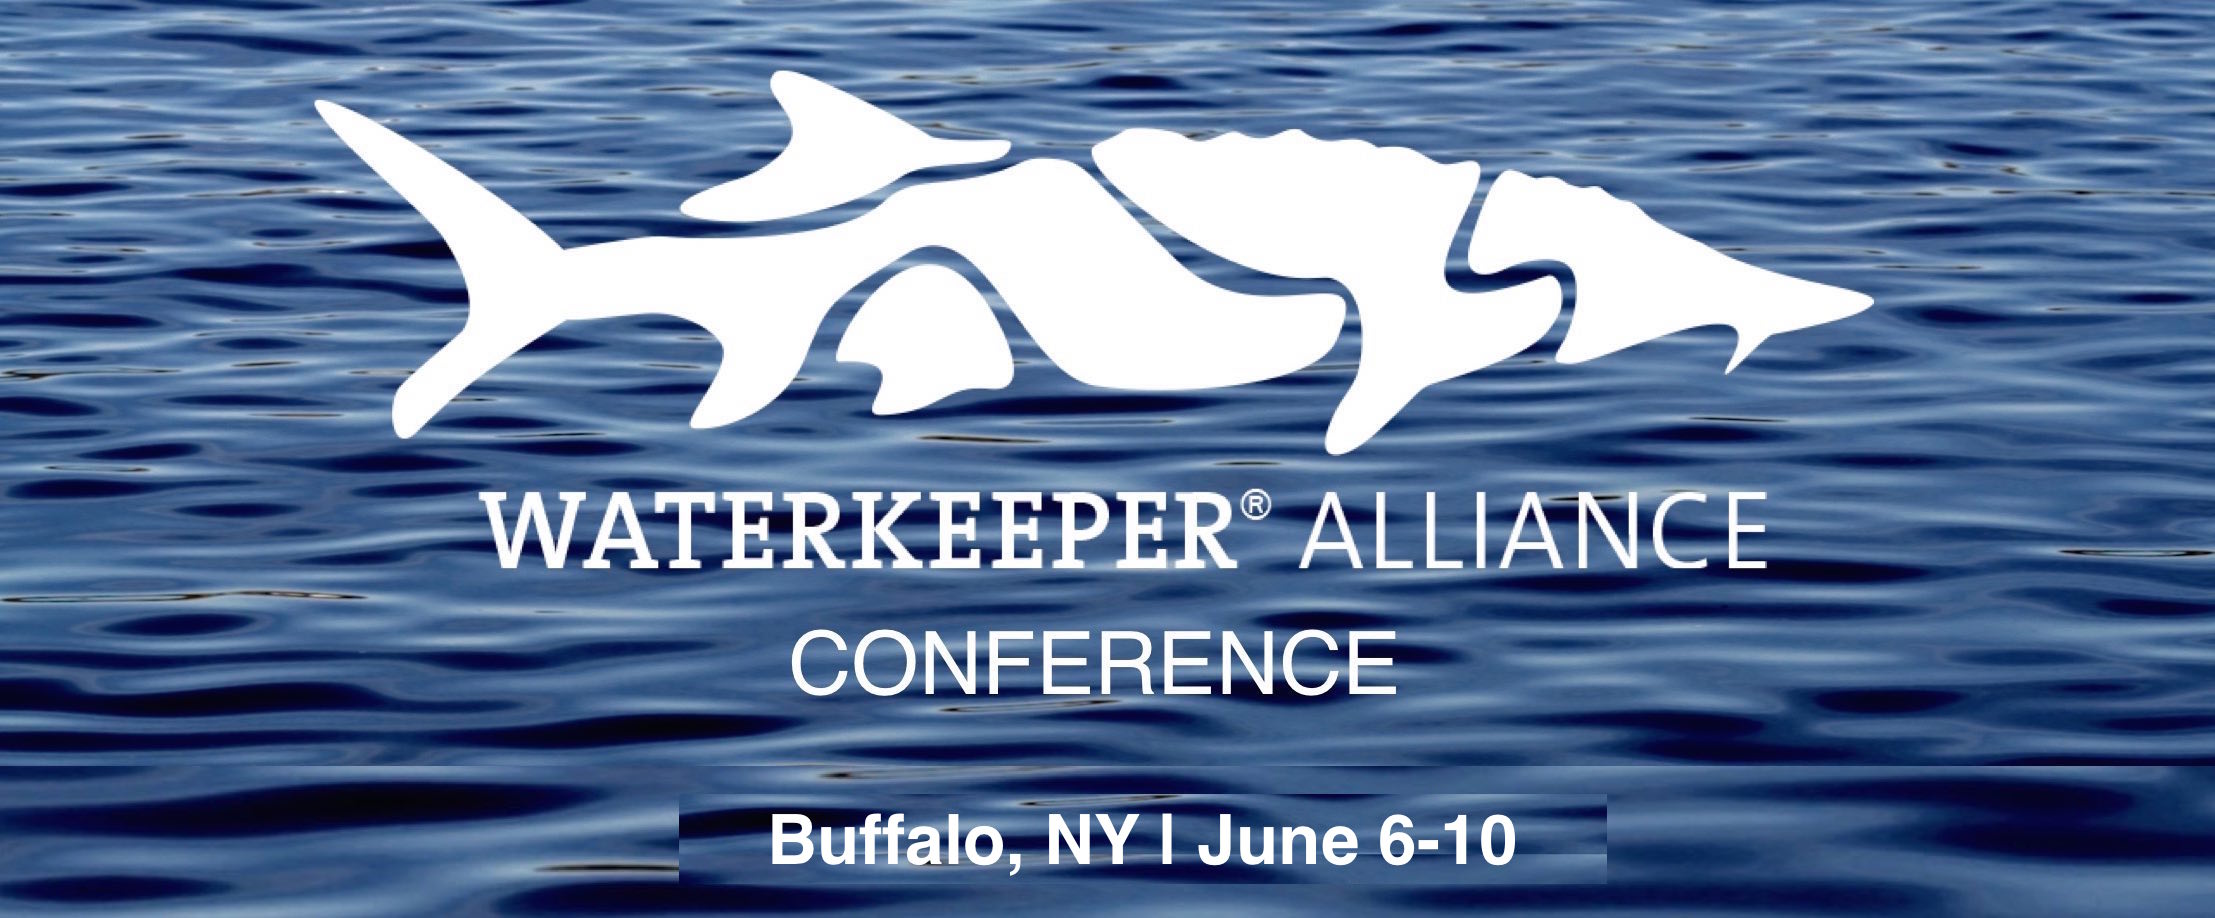 2018 Waterkeeper Alliance Conference